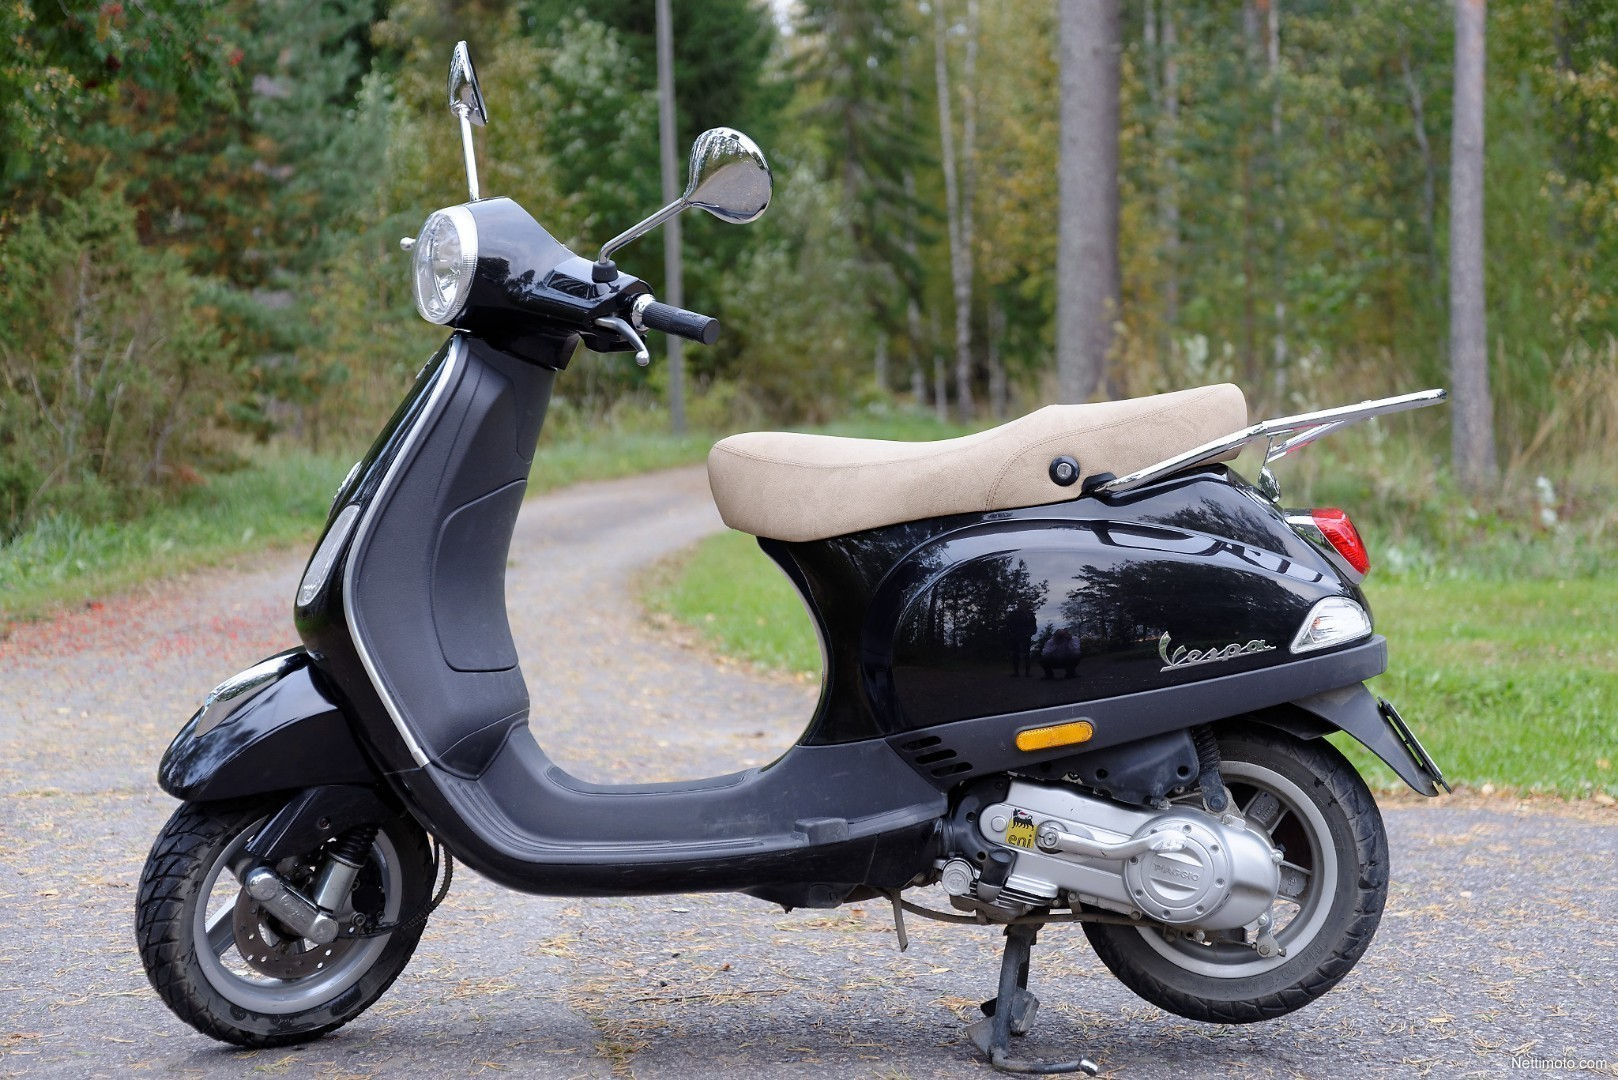 Vespa LX 50 2T: pics, specs and list of seriess by year